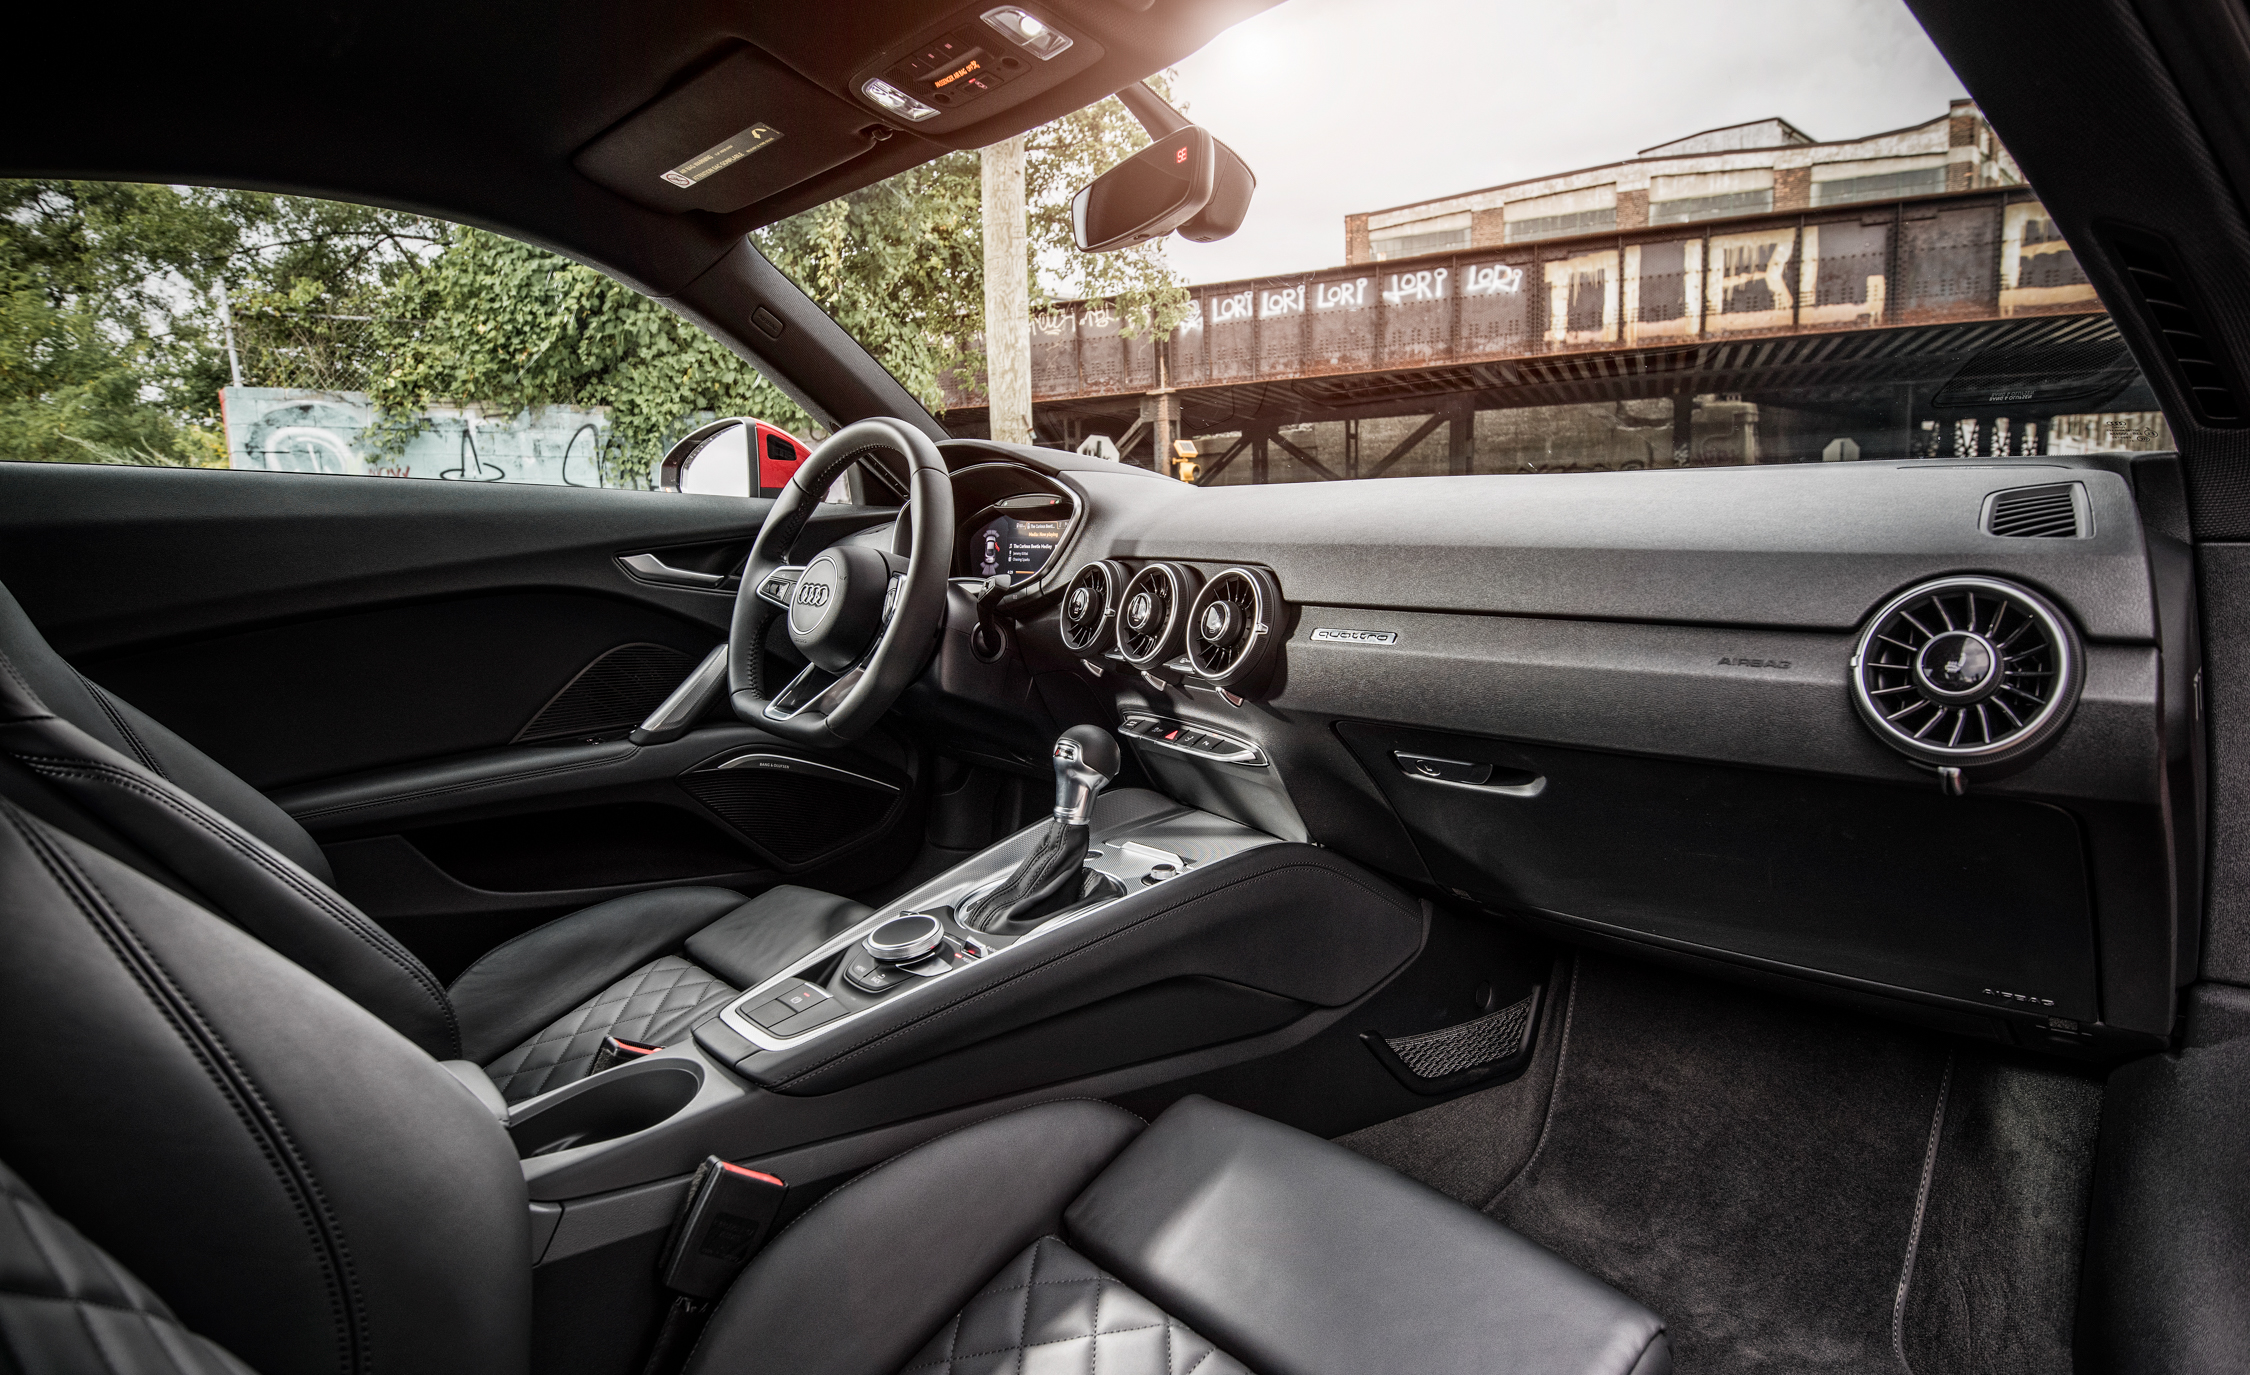 2016 Audi TT Coupe Interior